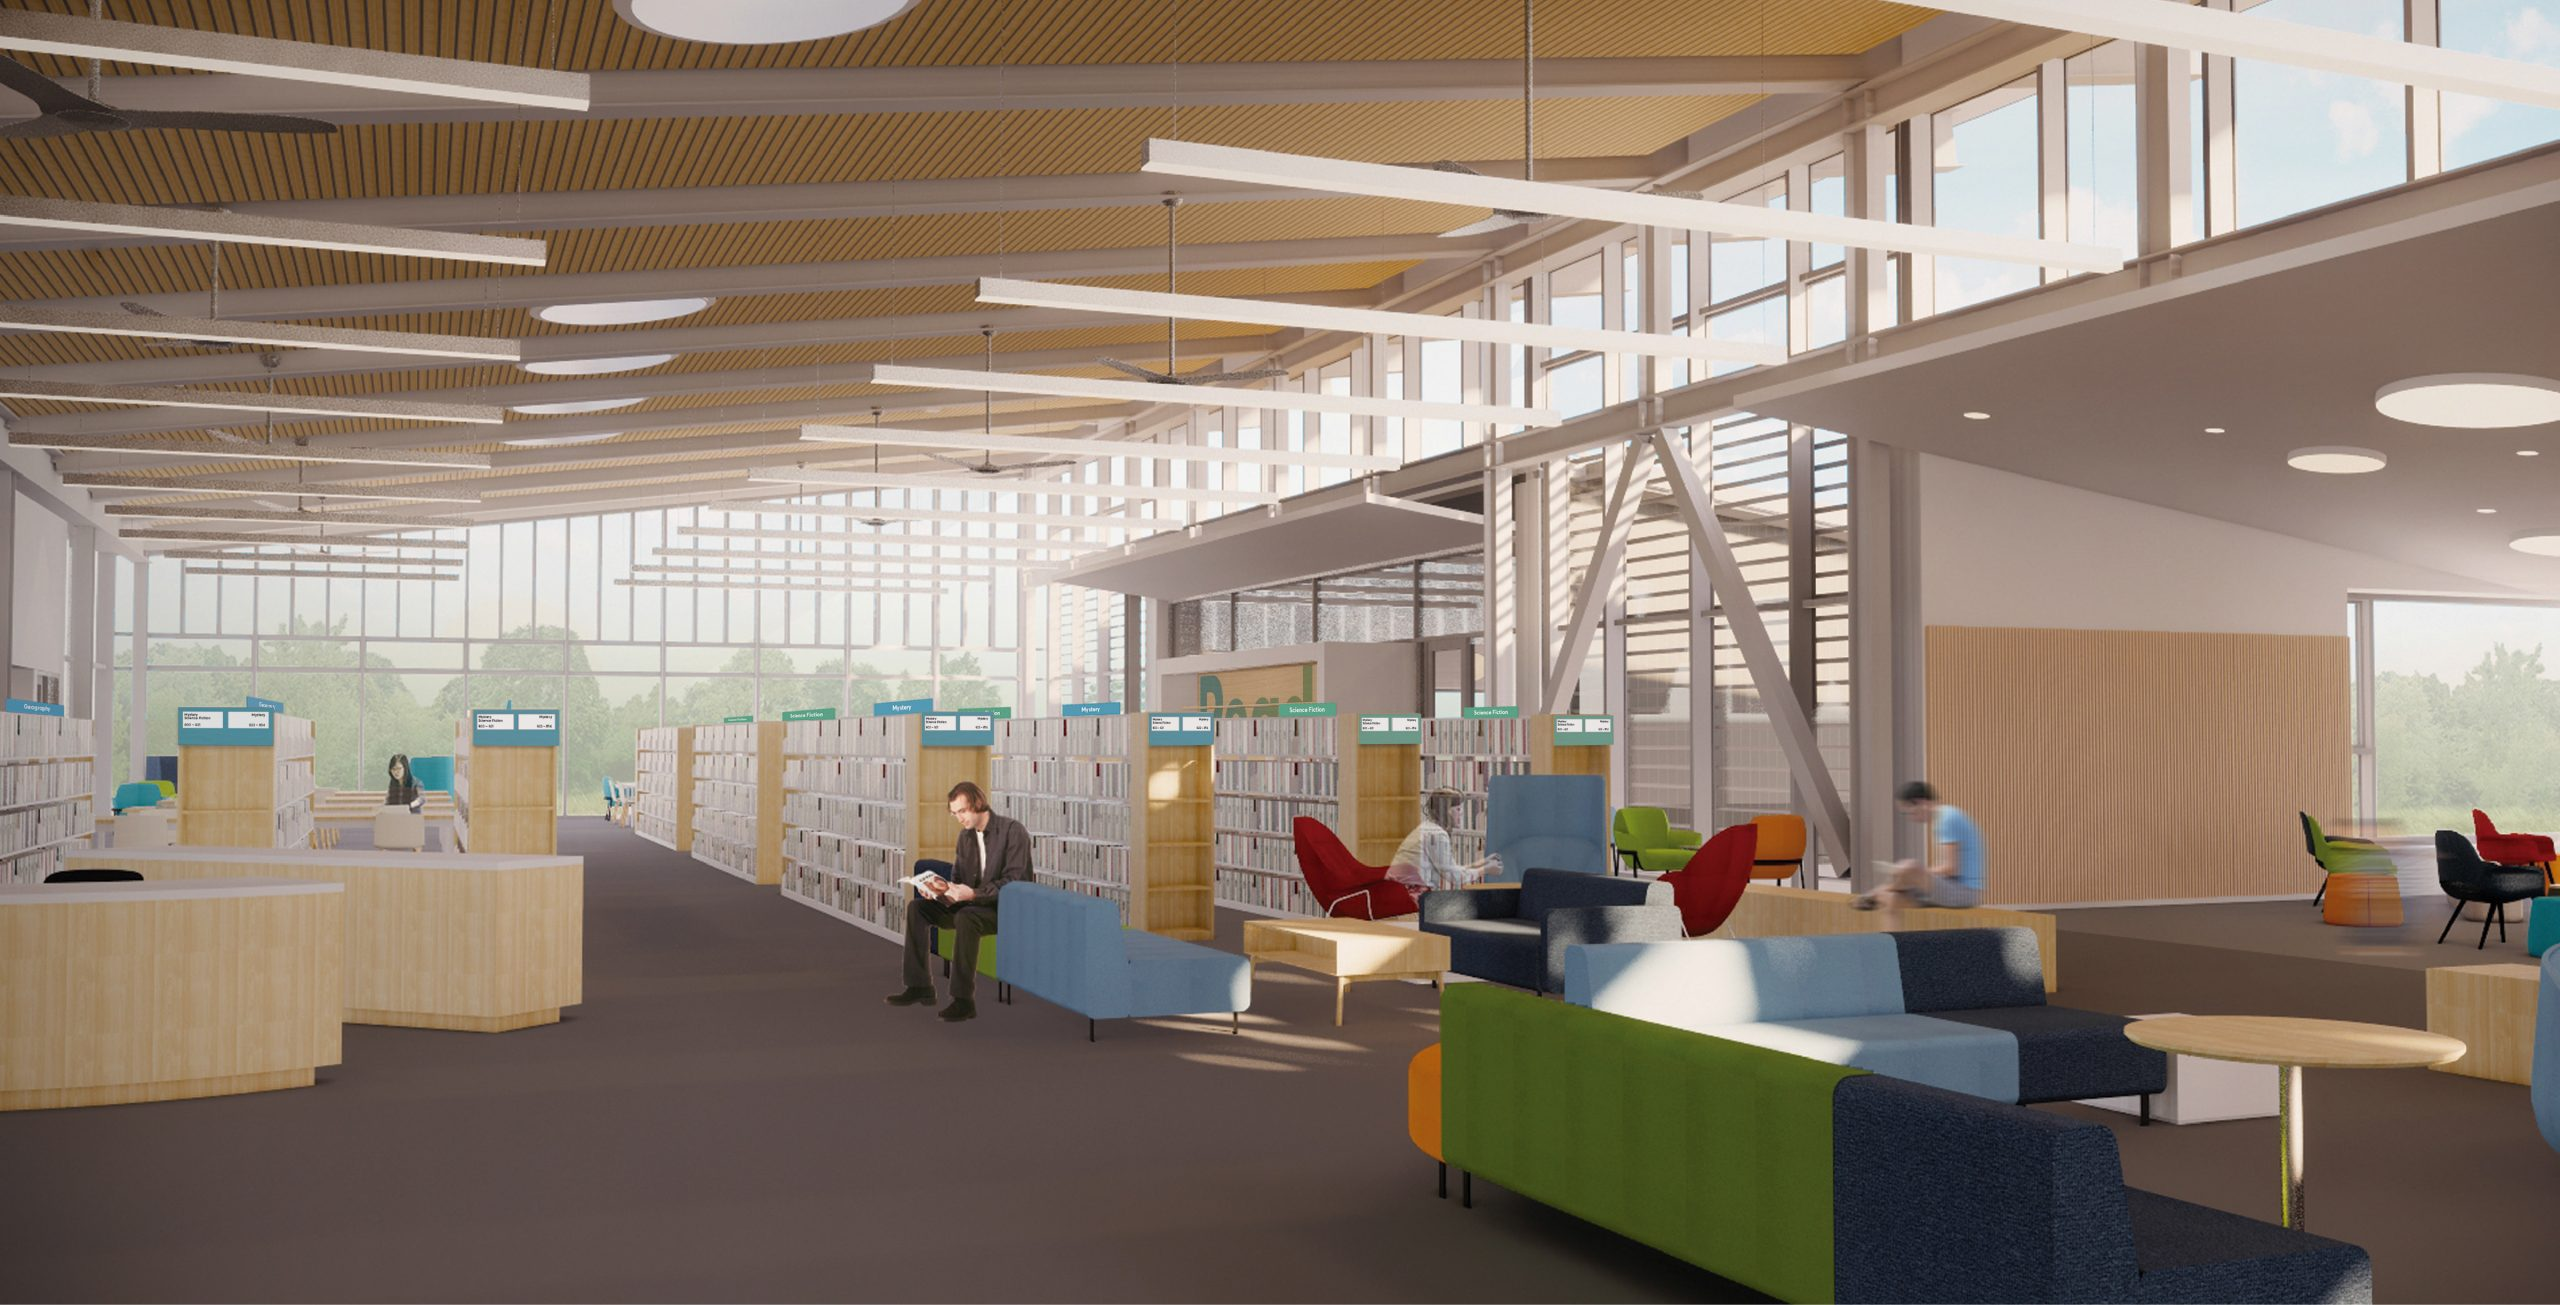 Why we need a new library